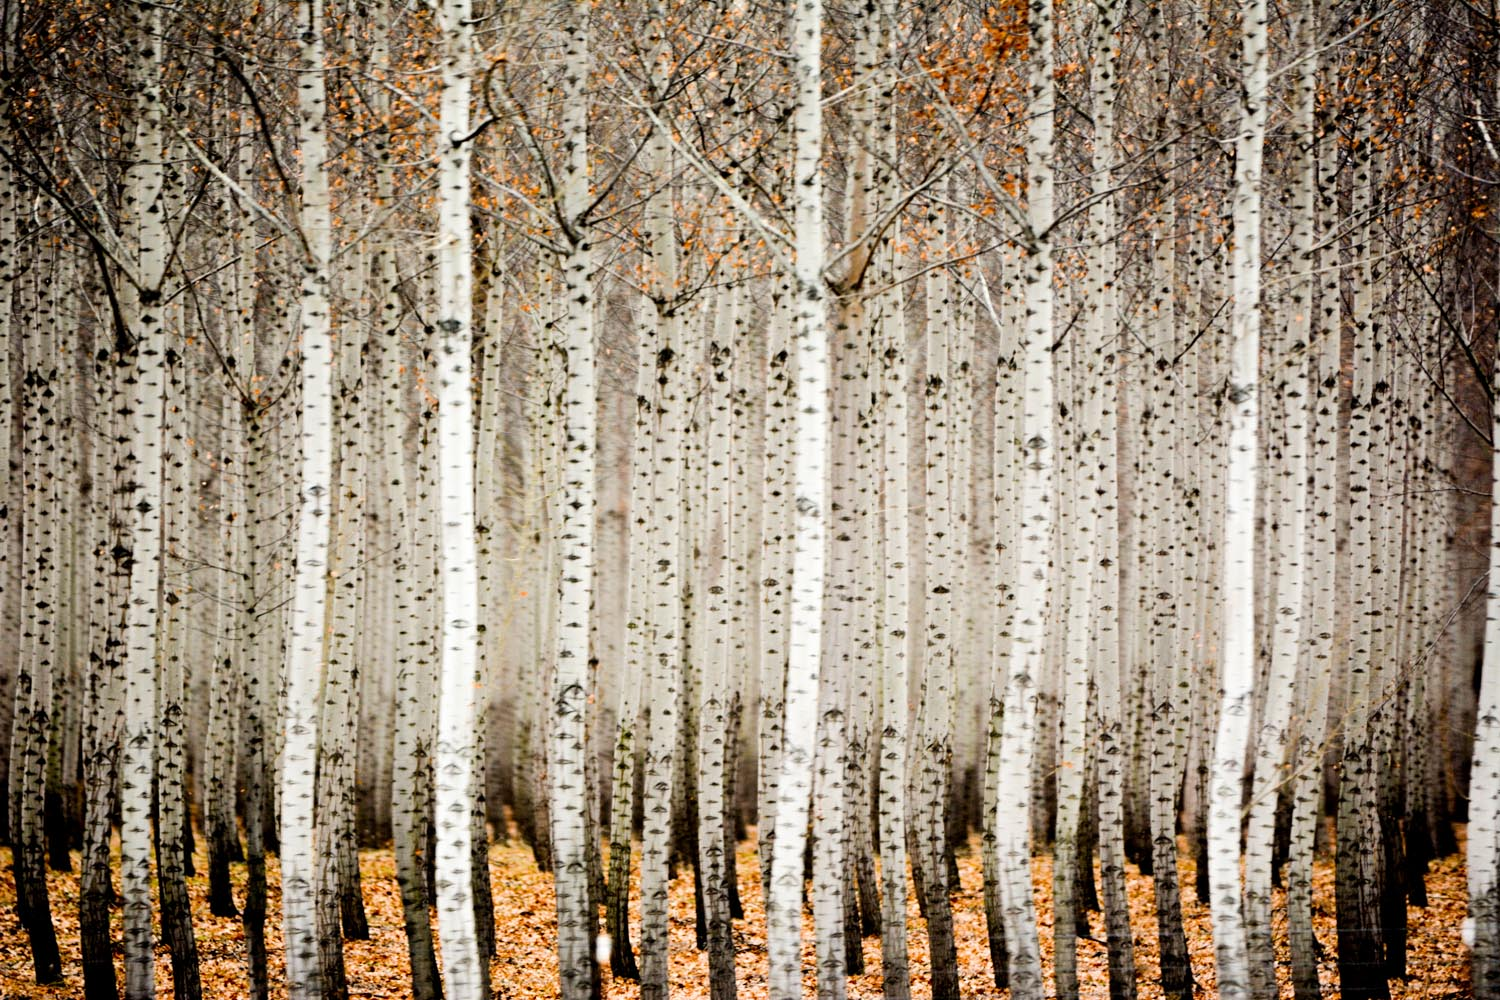 Poplar Trees in Autumn